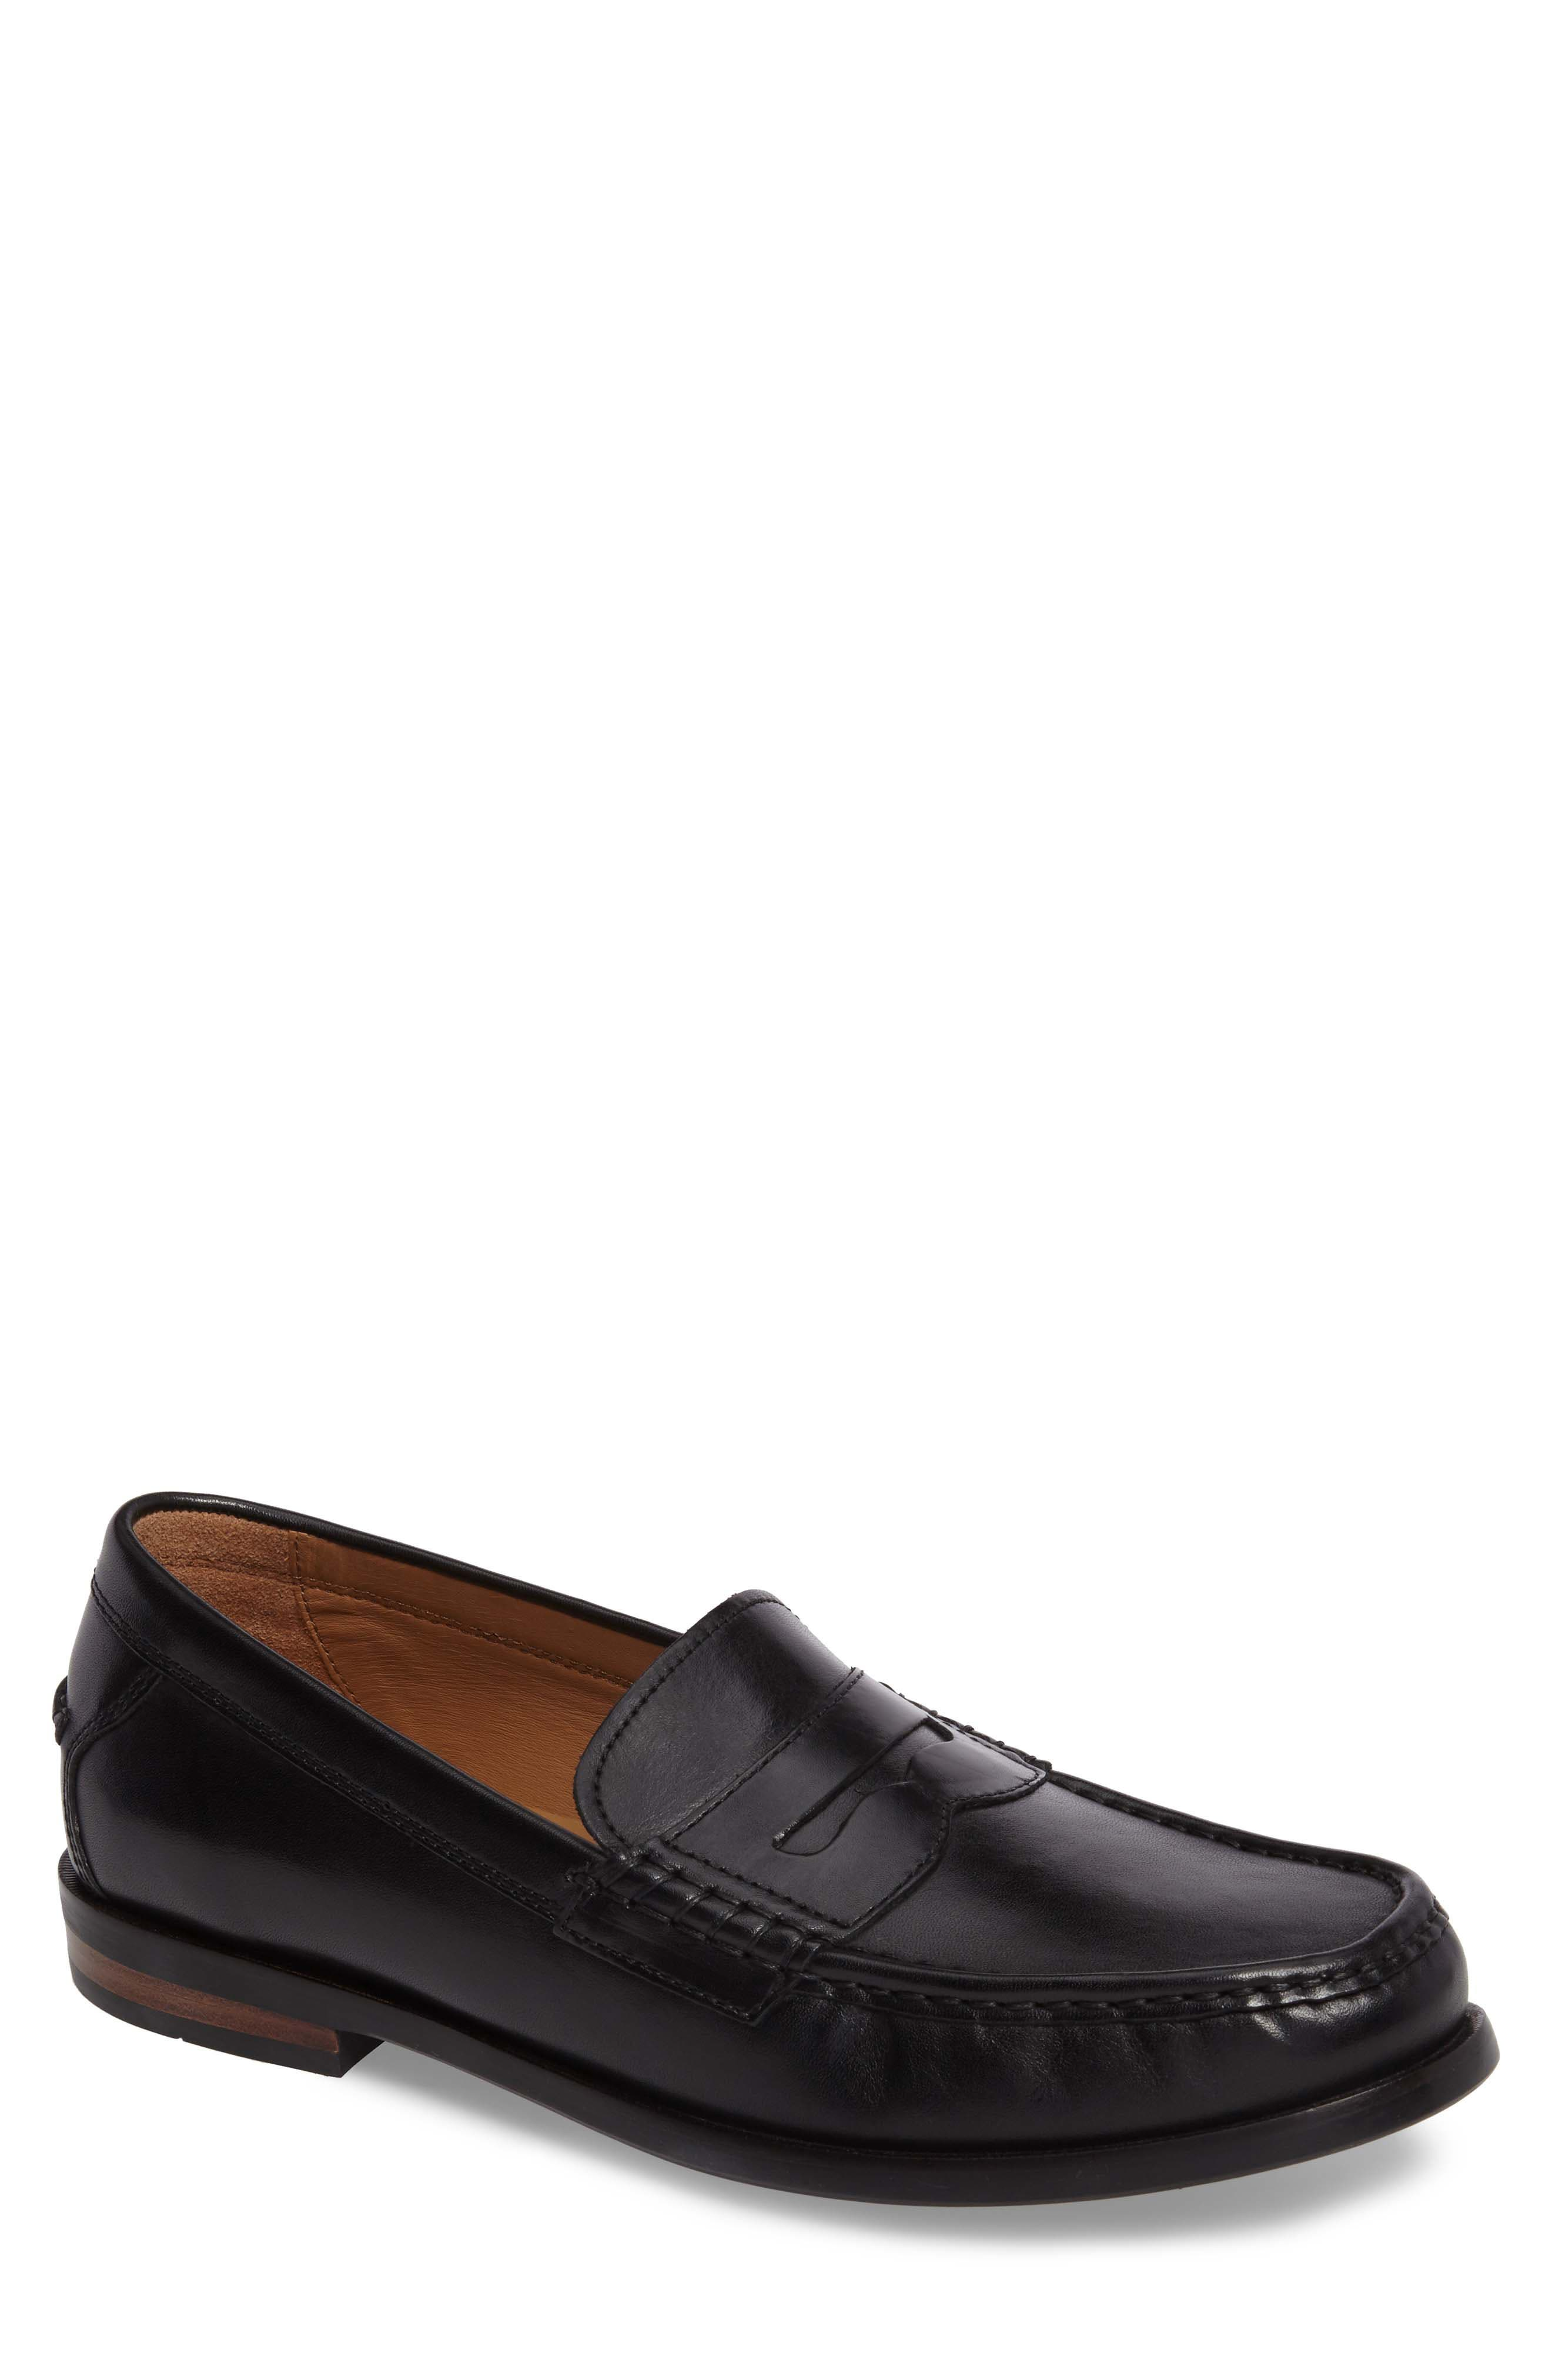 Main Image - Cole Haan Pinch Friday Penny Loafer (Men)